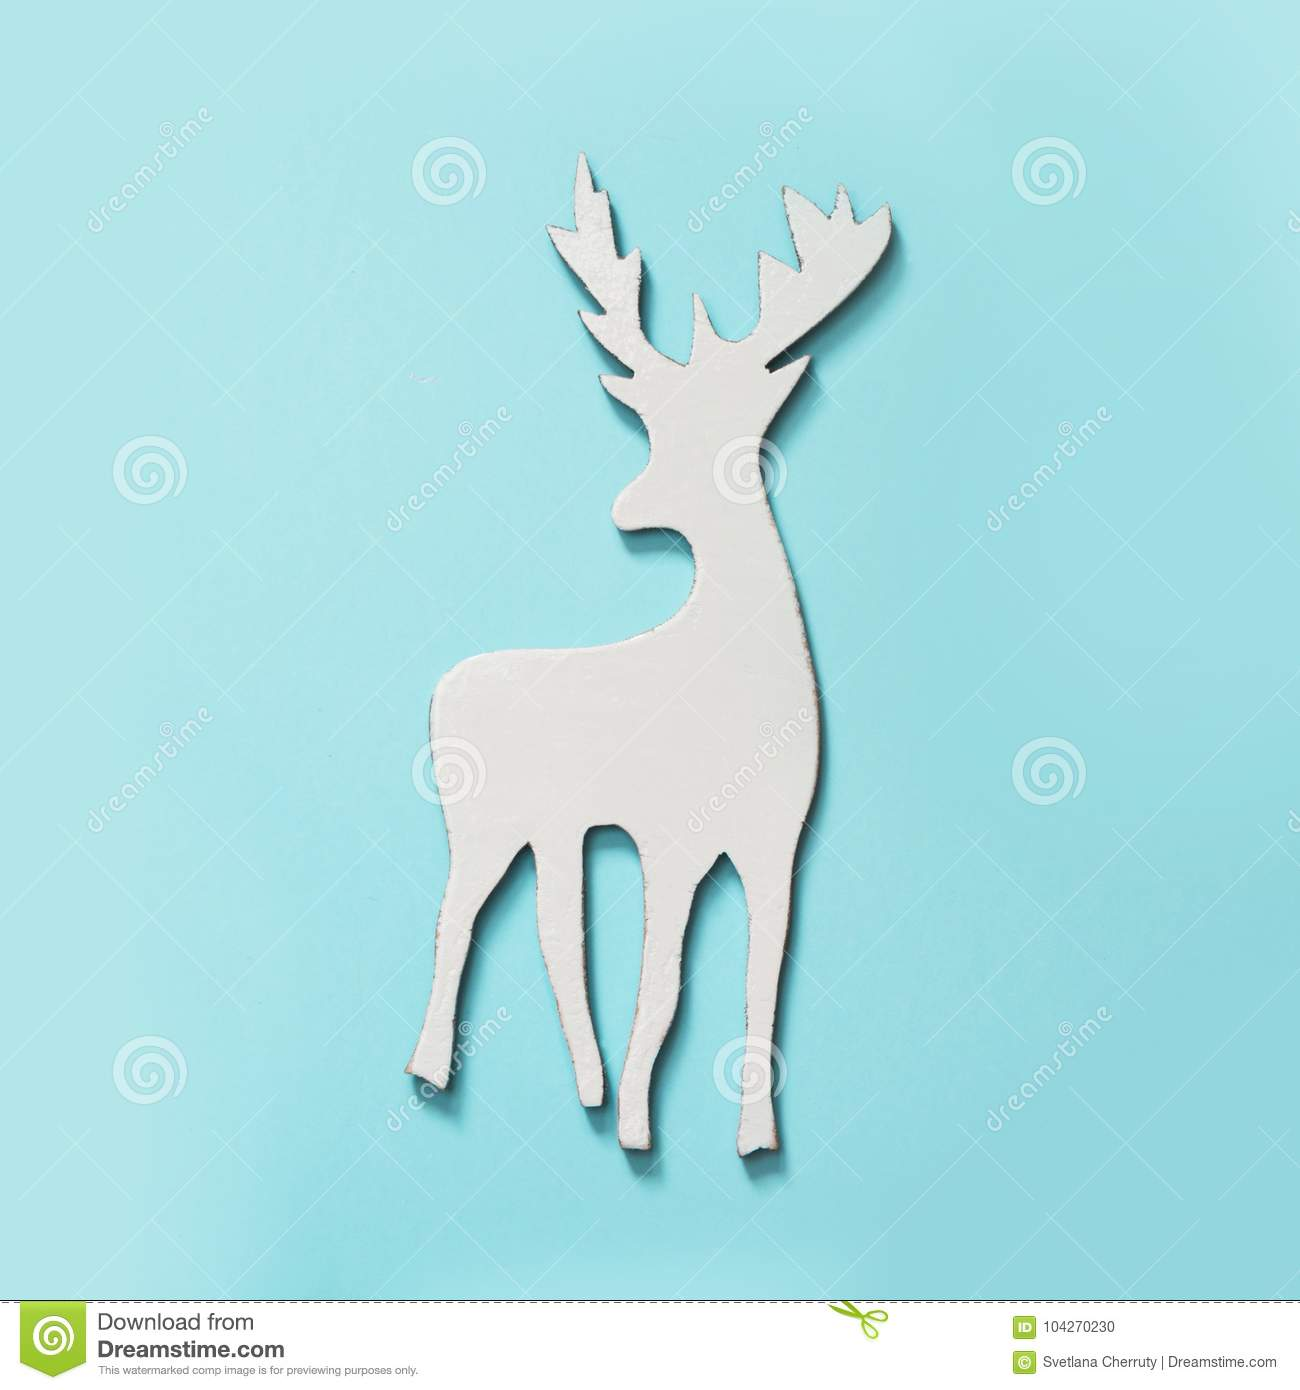 white christmas reindeer with antlers on blue hipster background flat lay new year concept